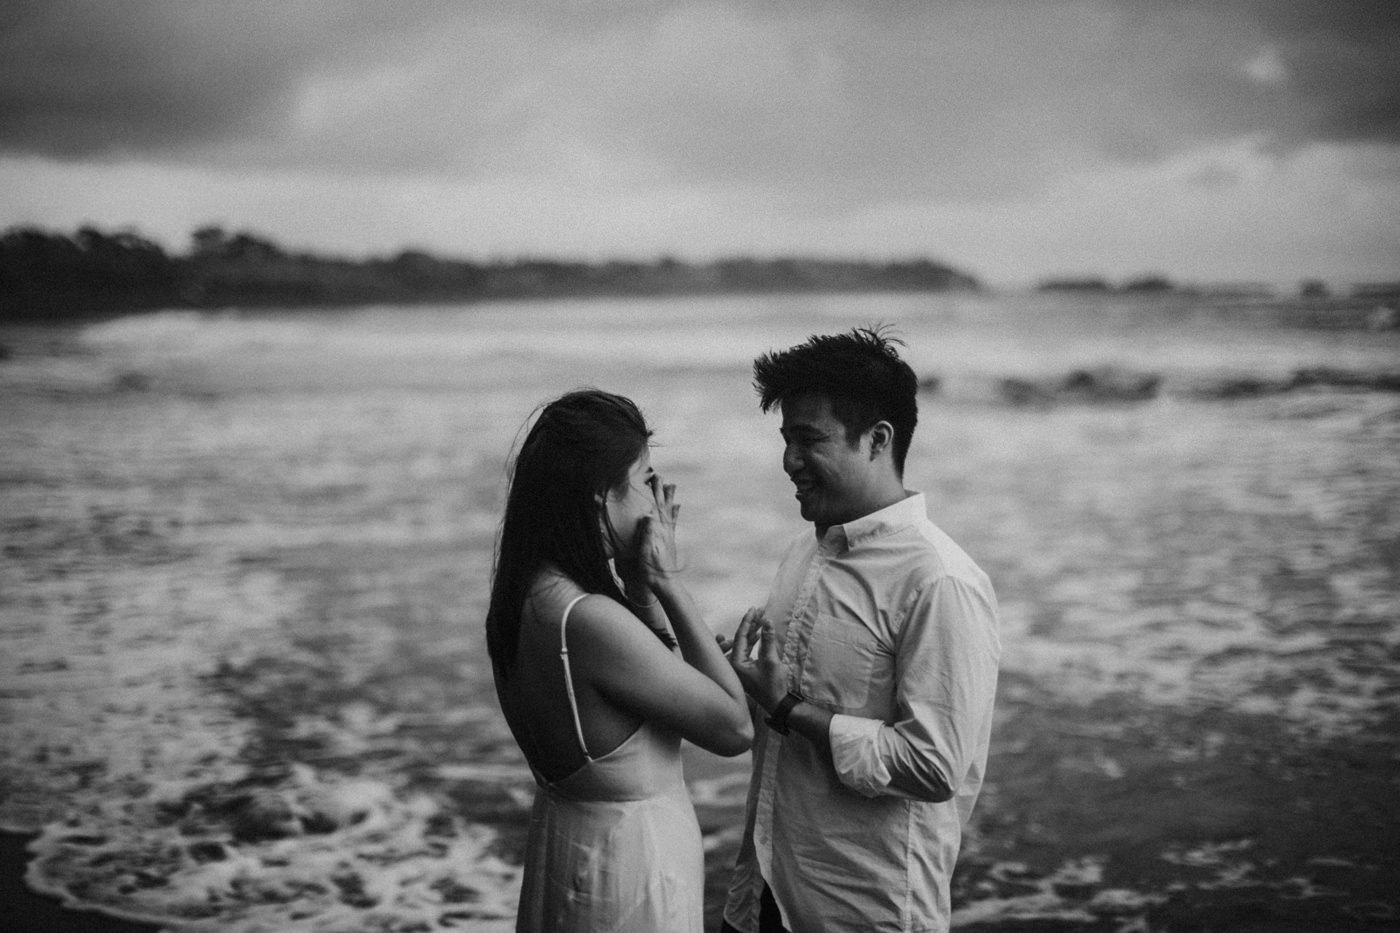 nyanyi beach prewedding iluminen bali wedding photographer destination photography connection session candice low yu teng neo